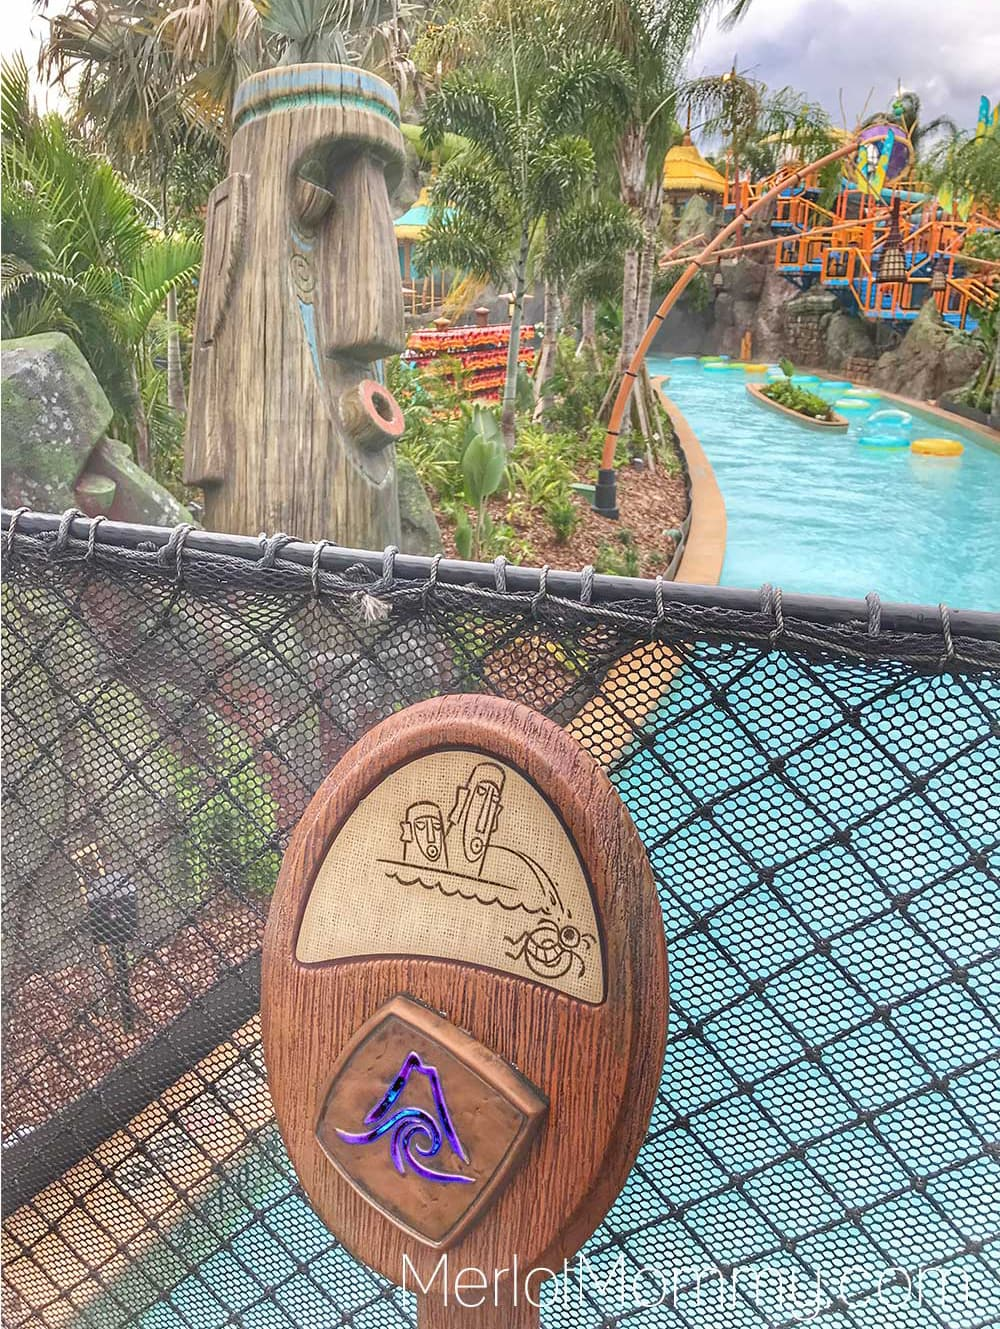 9 Reasons Volcano Bay is Perfect for Tweens and Teens - TapuTapu